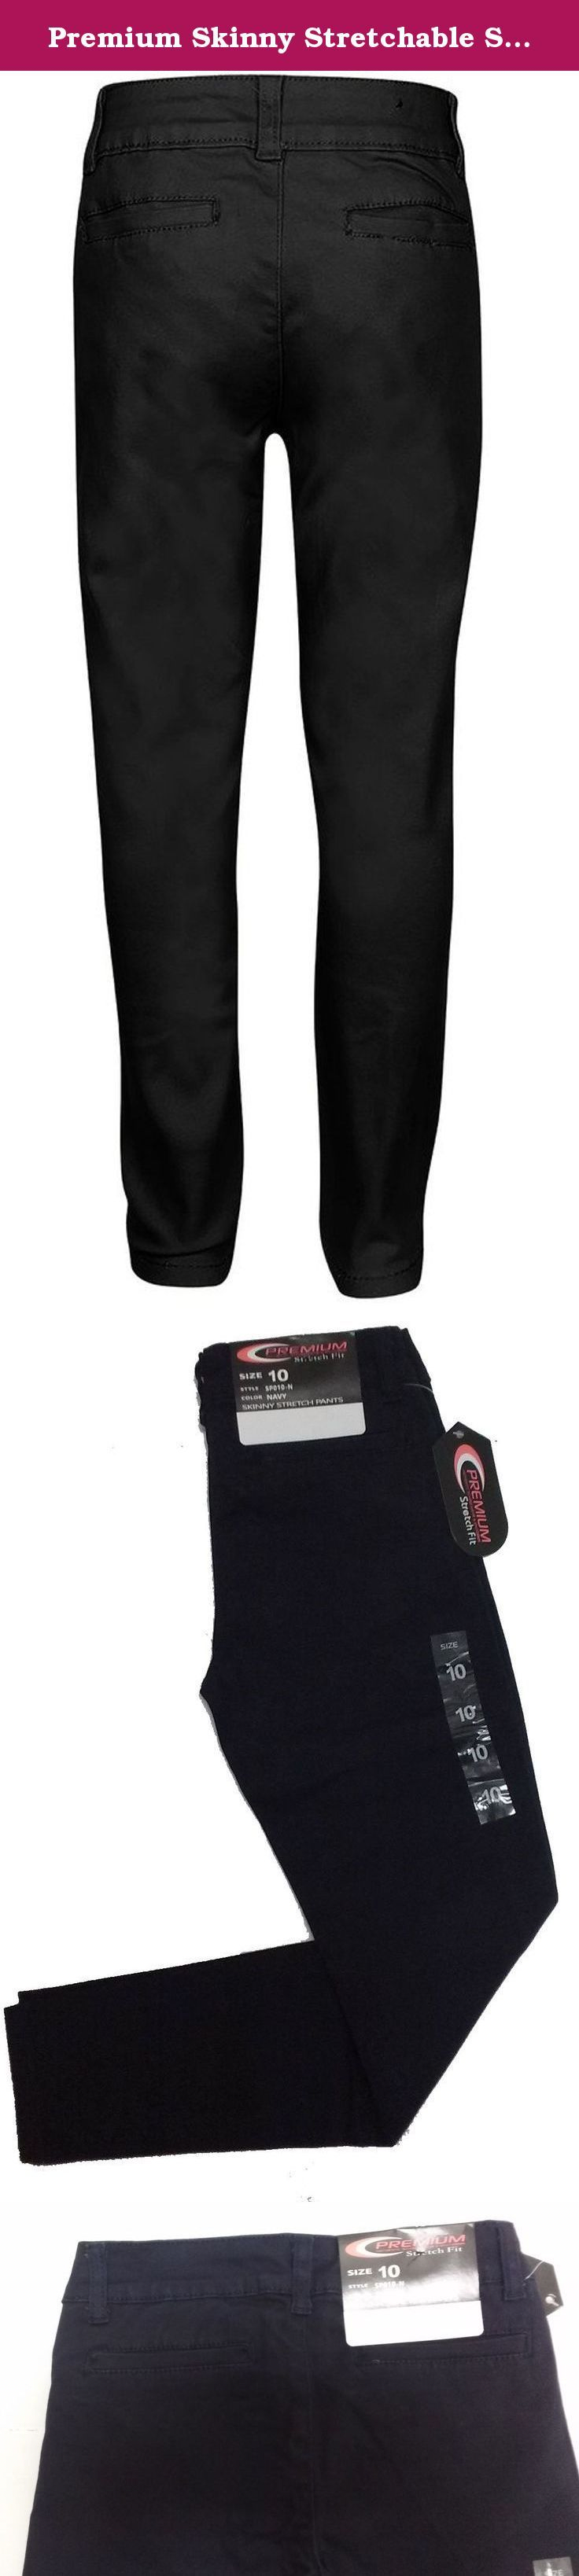 Premium Skinny Stretchable School Uniform Pants for Girls 12 Black. Have you been finding it difficult to get a skinny pant with stretchable material that looks stylish too? Or Are you looking for a skinny pant that can be comfortably worn for long durations without causing itching, excessive sweating or irritation? Well, we bring to you a skinny pant design that you will love for its many incredible features and benefits: - Stylish skinny fit with straight leg openings - looks trendy and...